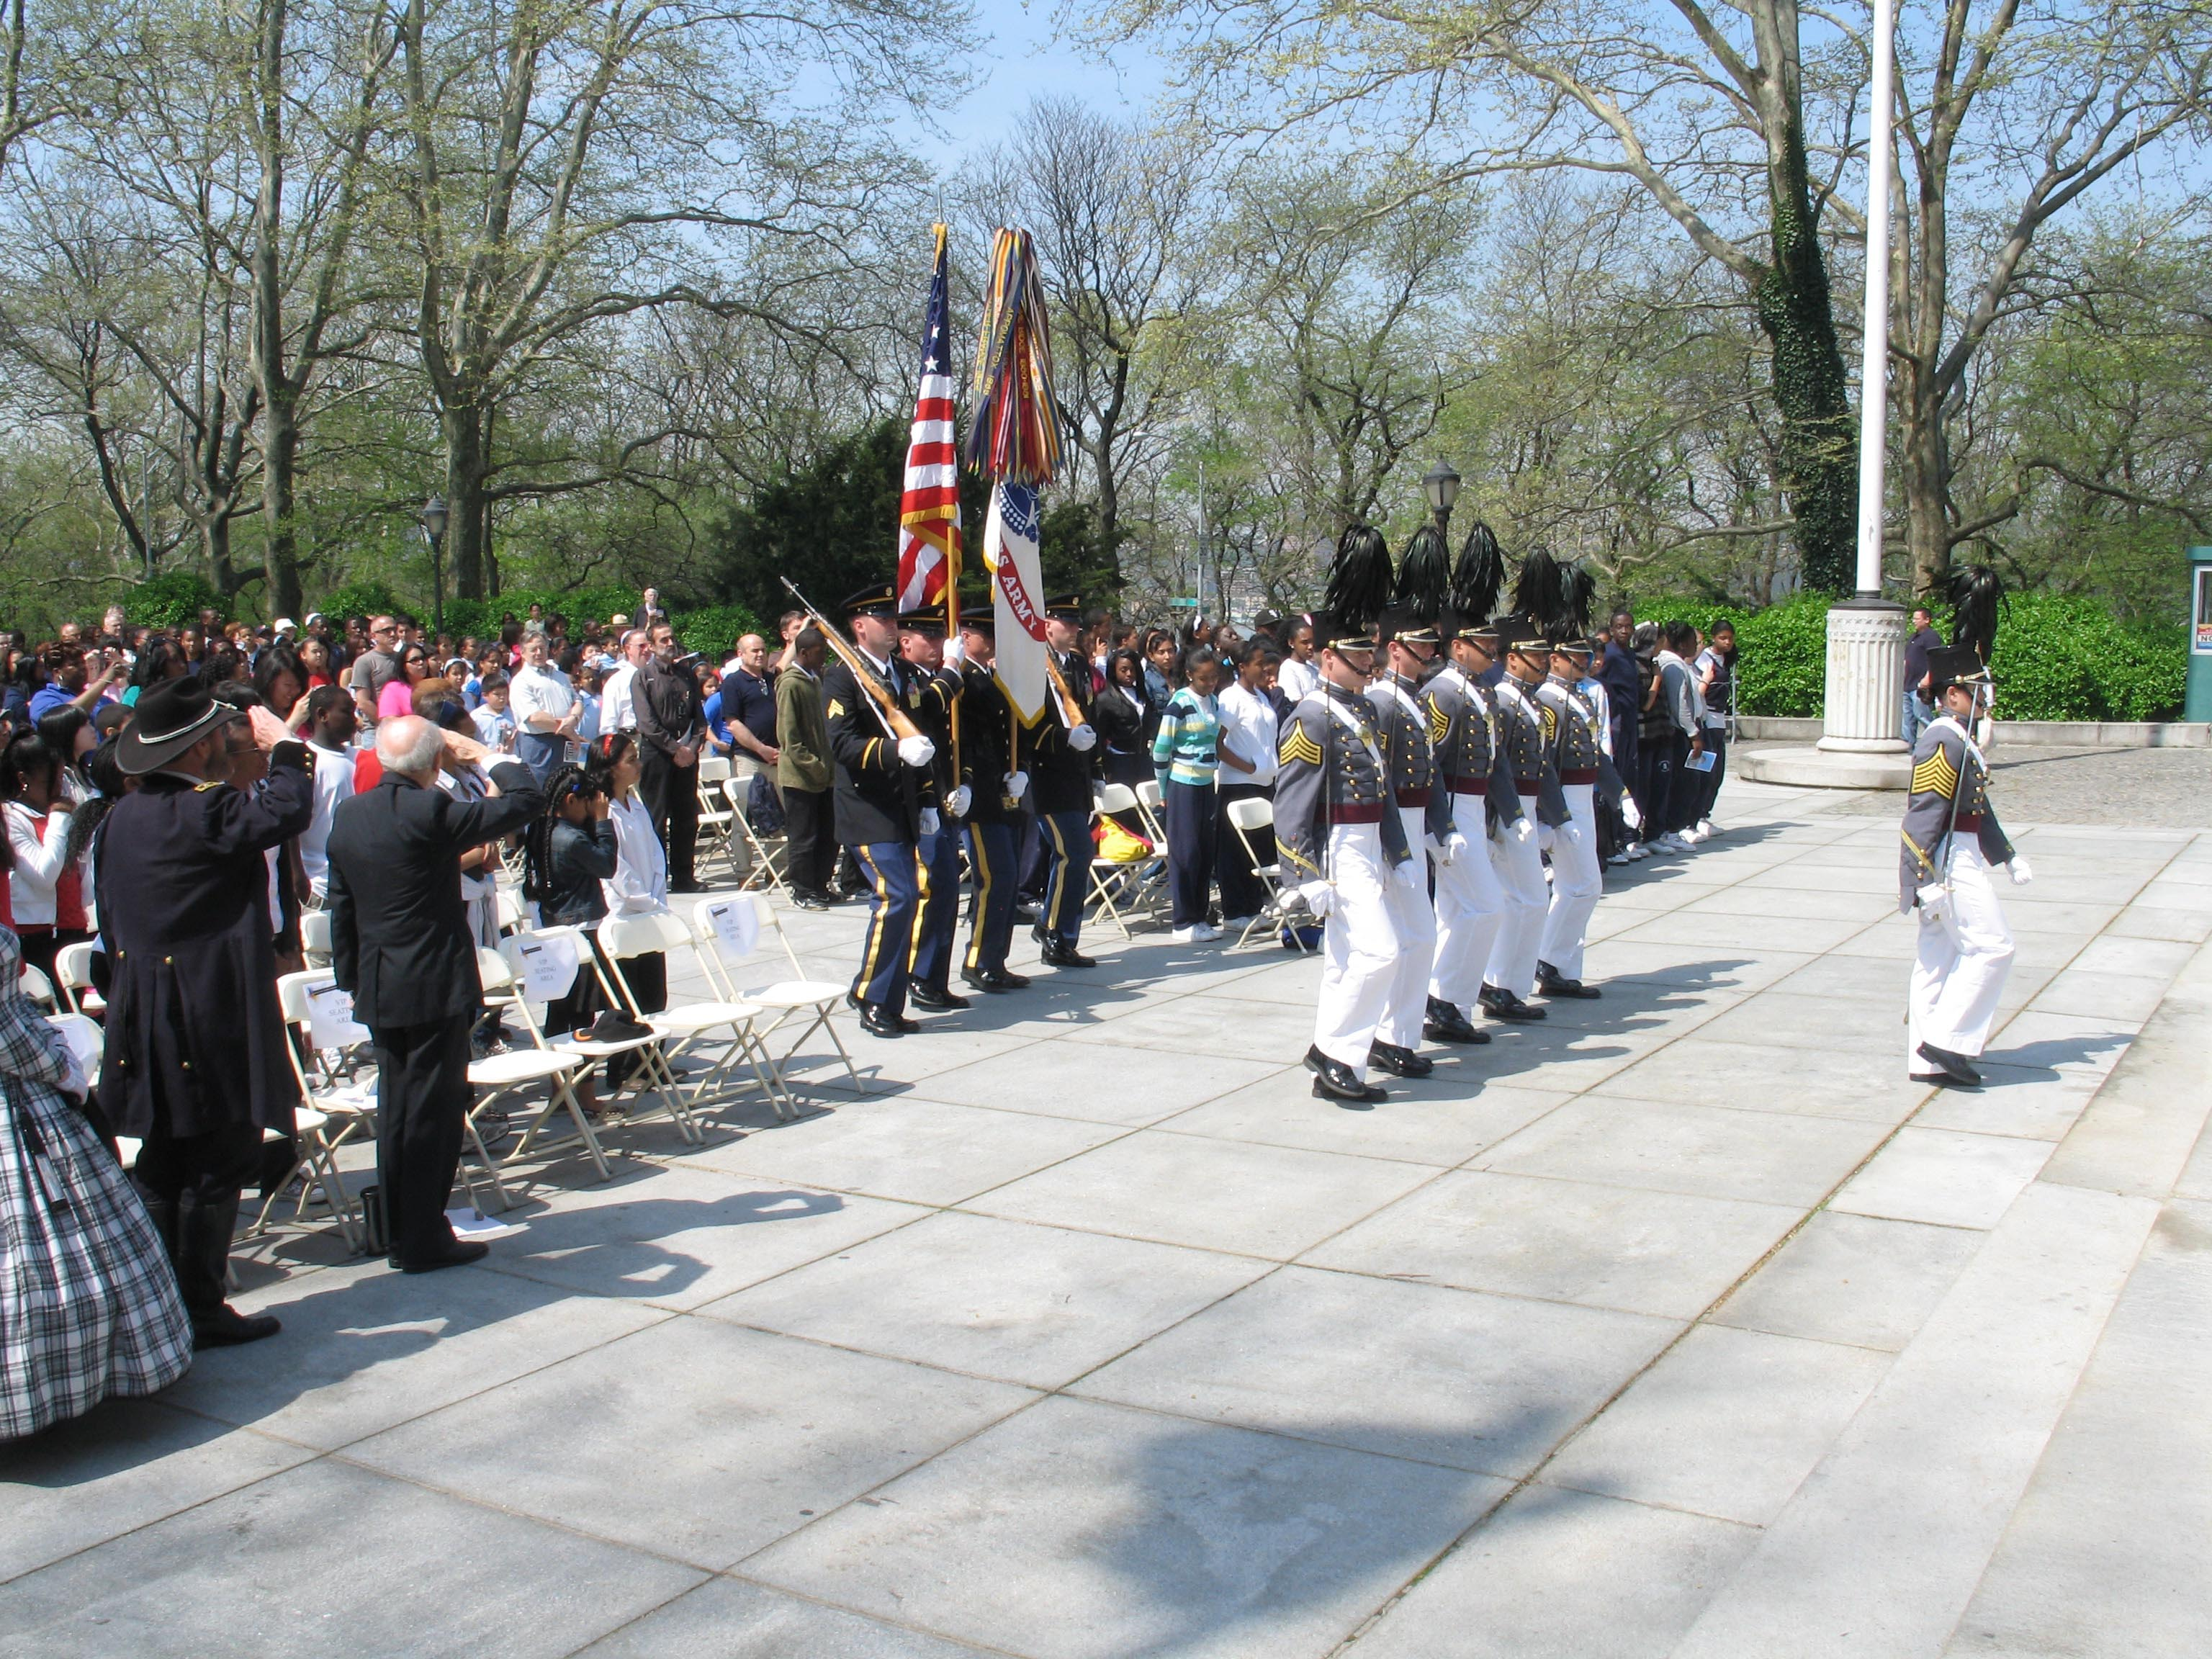 Every April 27, the Corps of Cadets and the Military Garrison at West Point Color Guard pays its respects to General Grant.